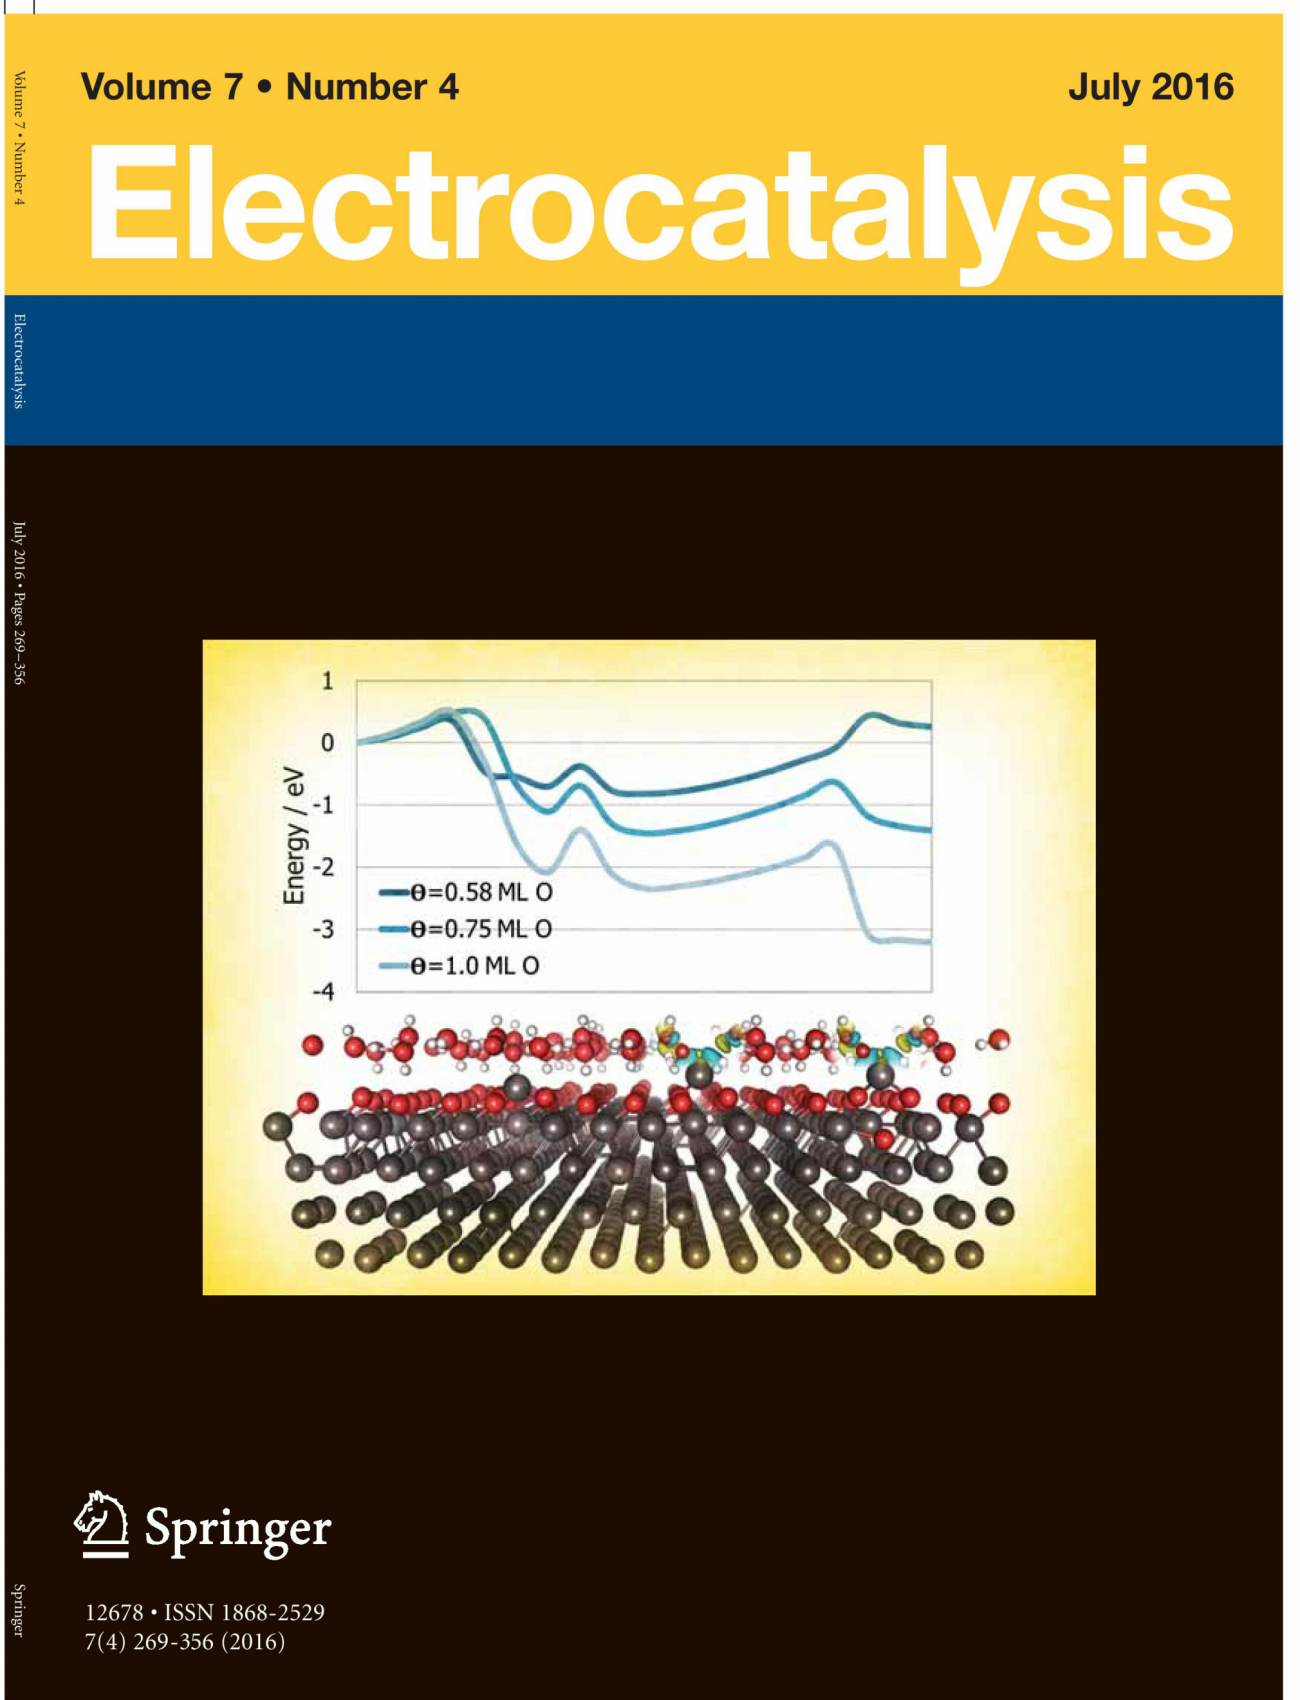 Cover_Image_Electrocatalysis